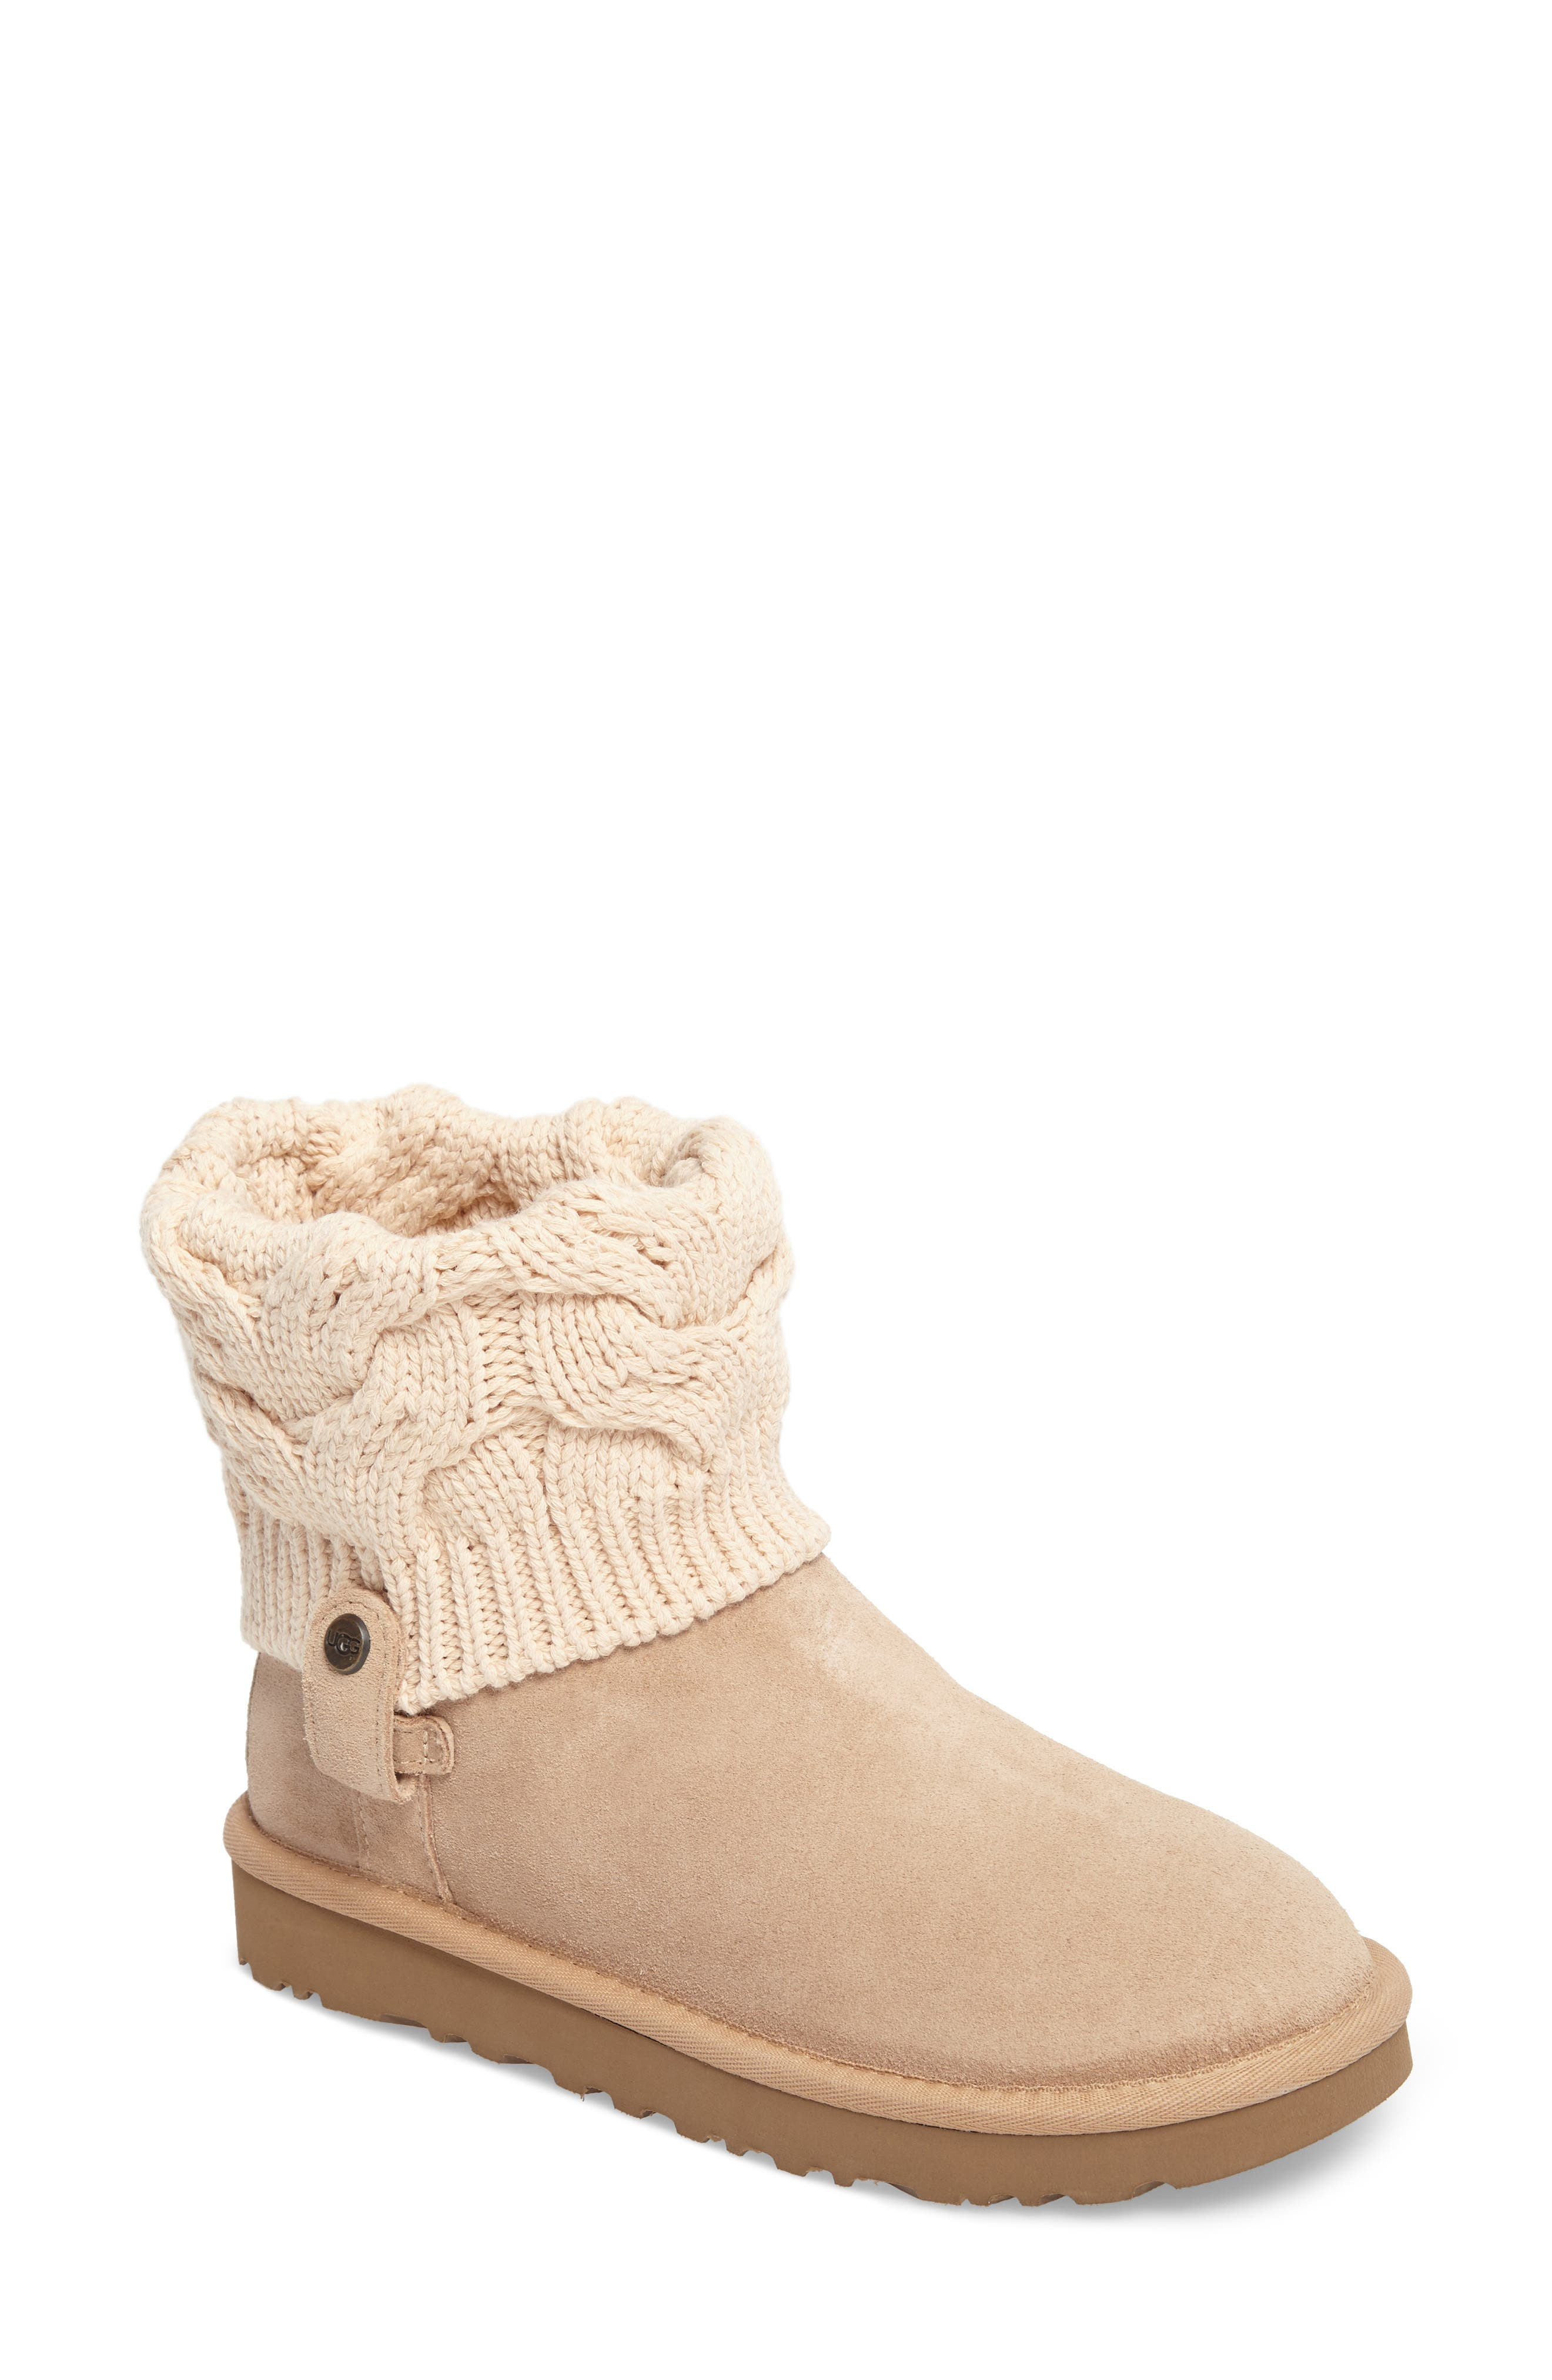 Alternate Image 1 Selected - UGG® Saela Knit Cuff Boot (Women)